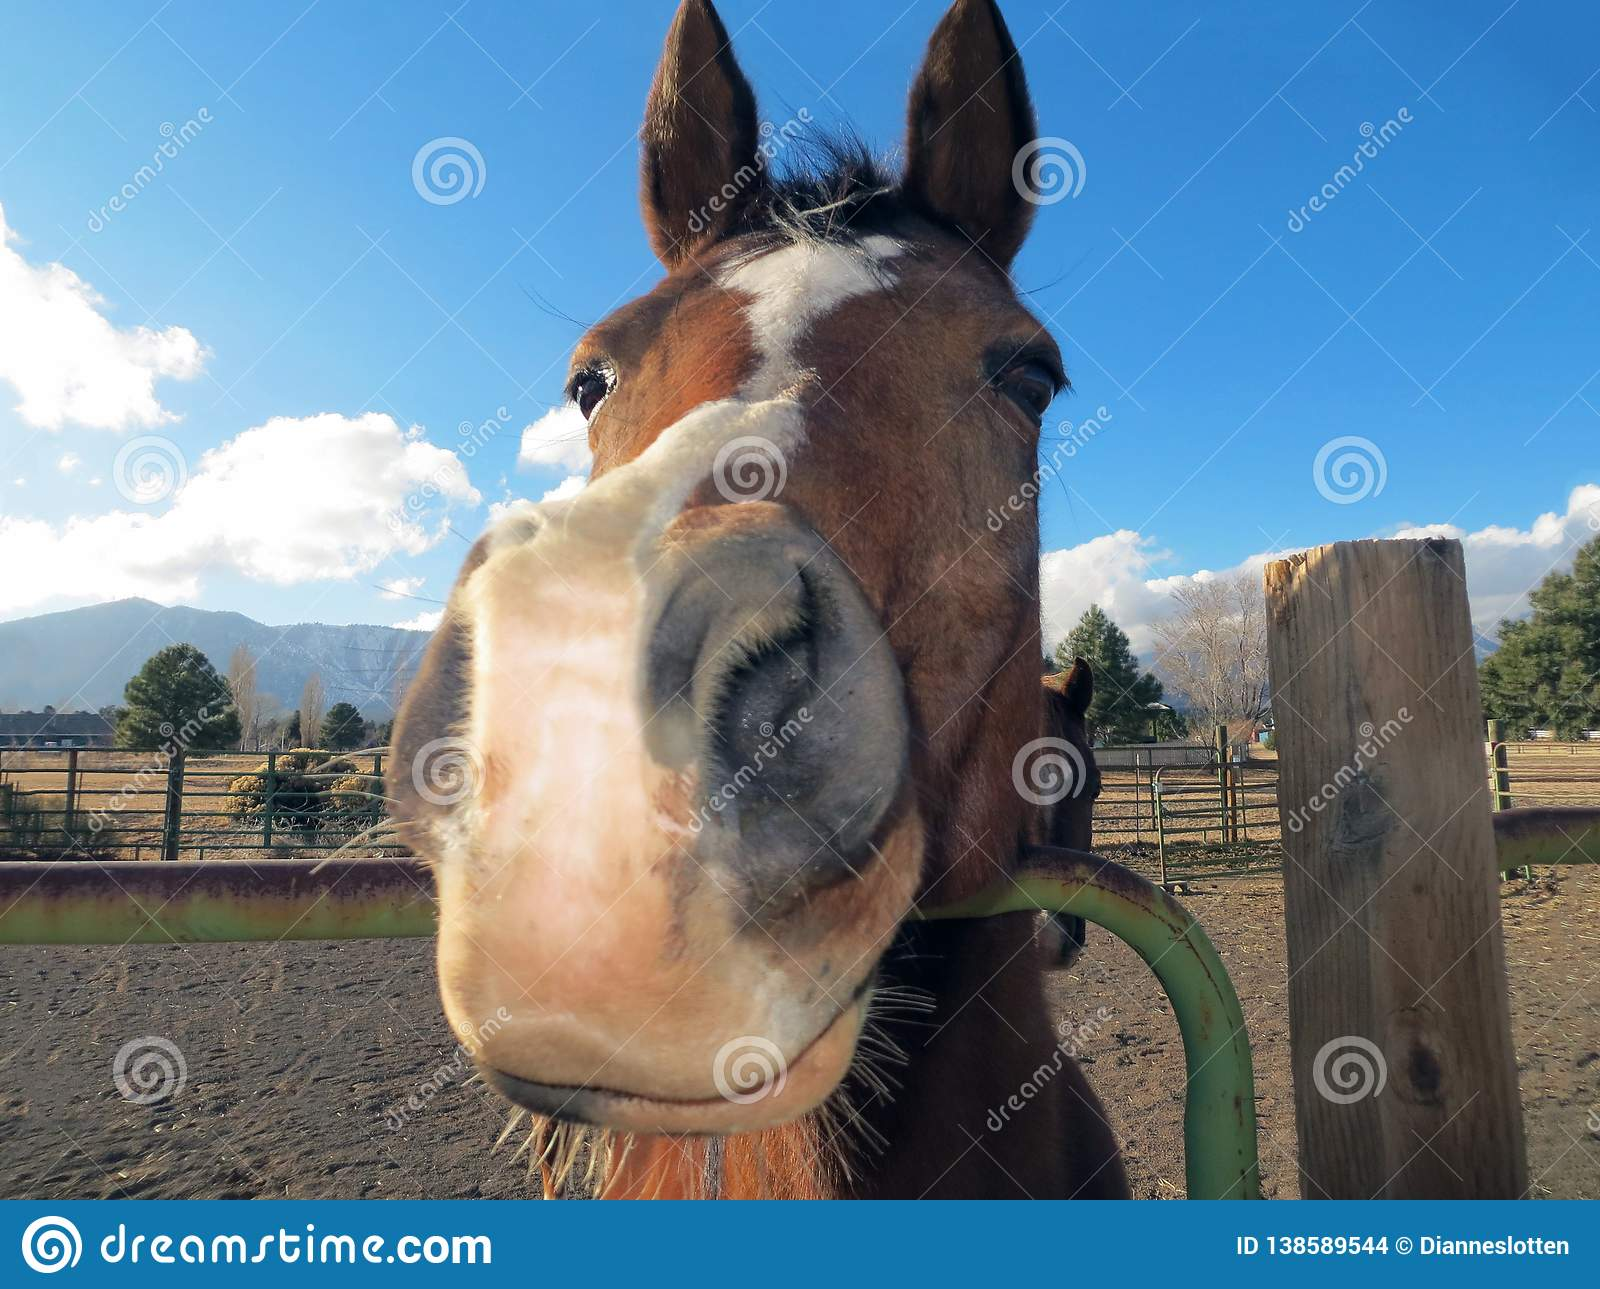 Funny Horse Face Looking At Camera Stock Photo Image Of Thinking Silly 138589544